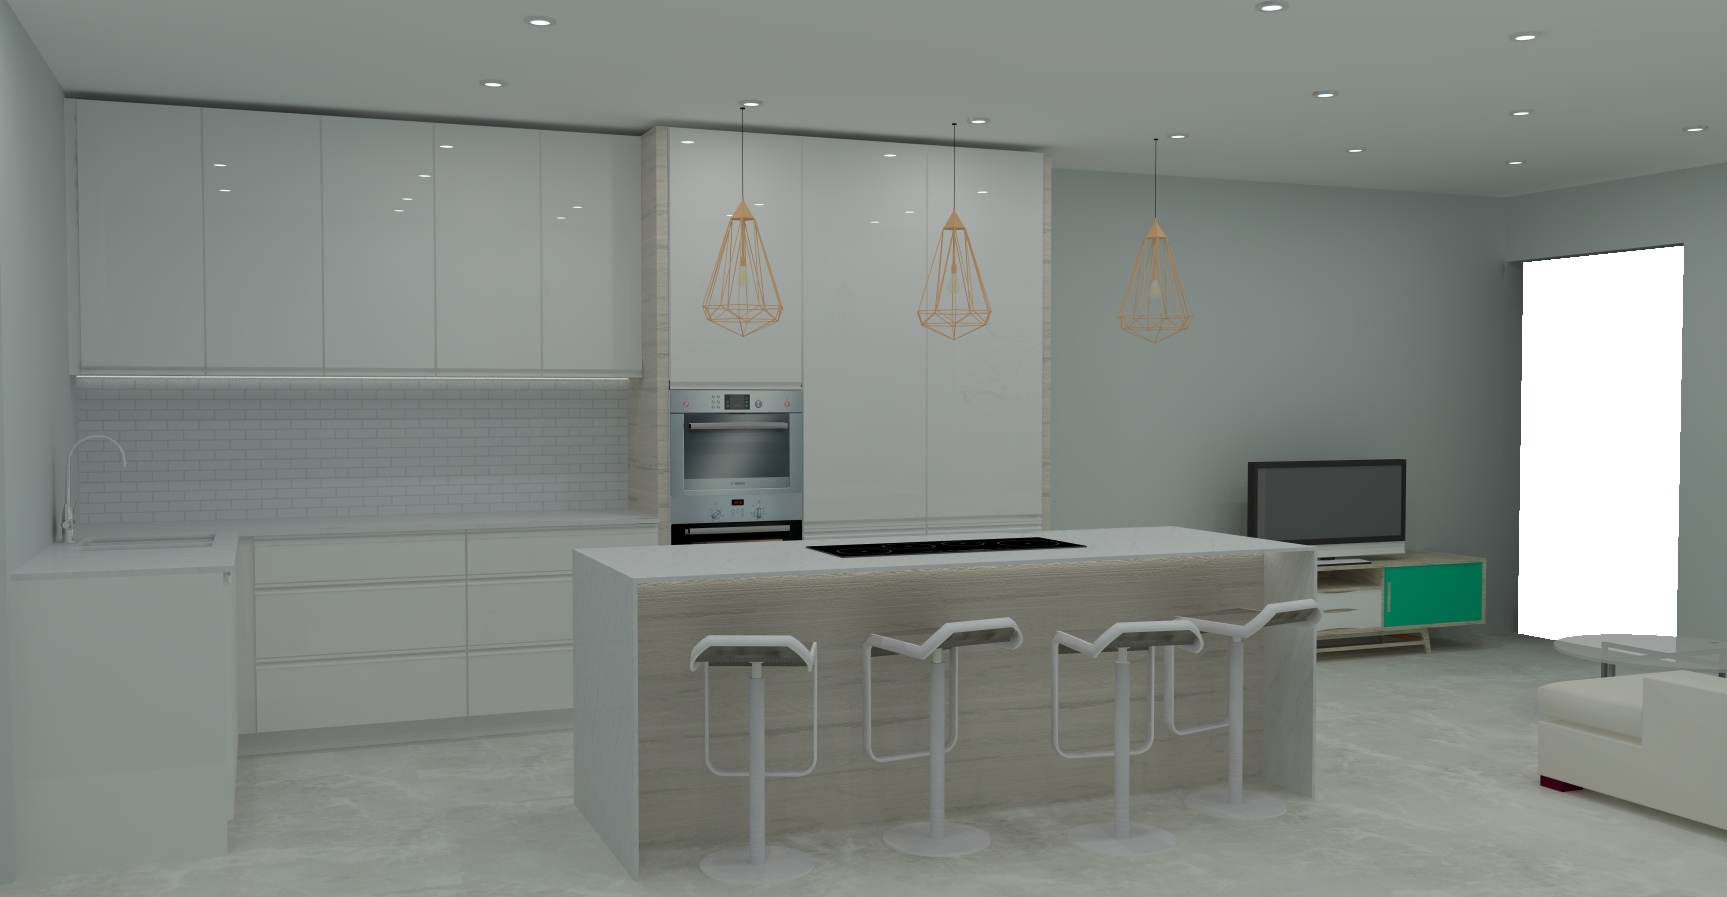 3d kitchen designs in cape town essential kitchens for Small kitchen designs cape town